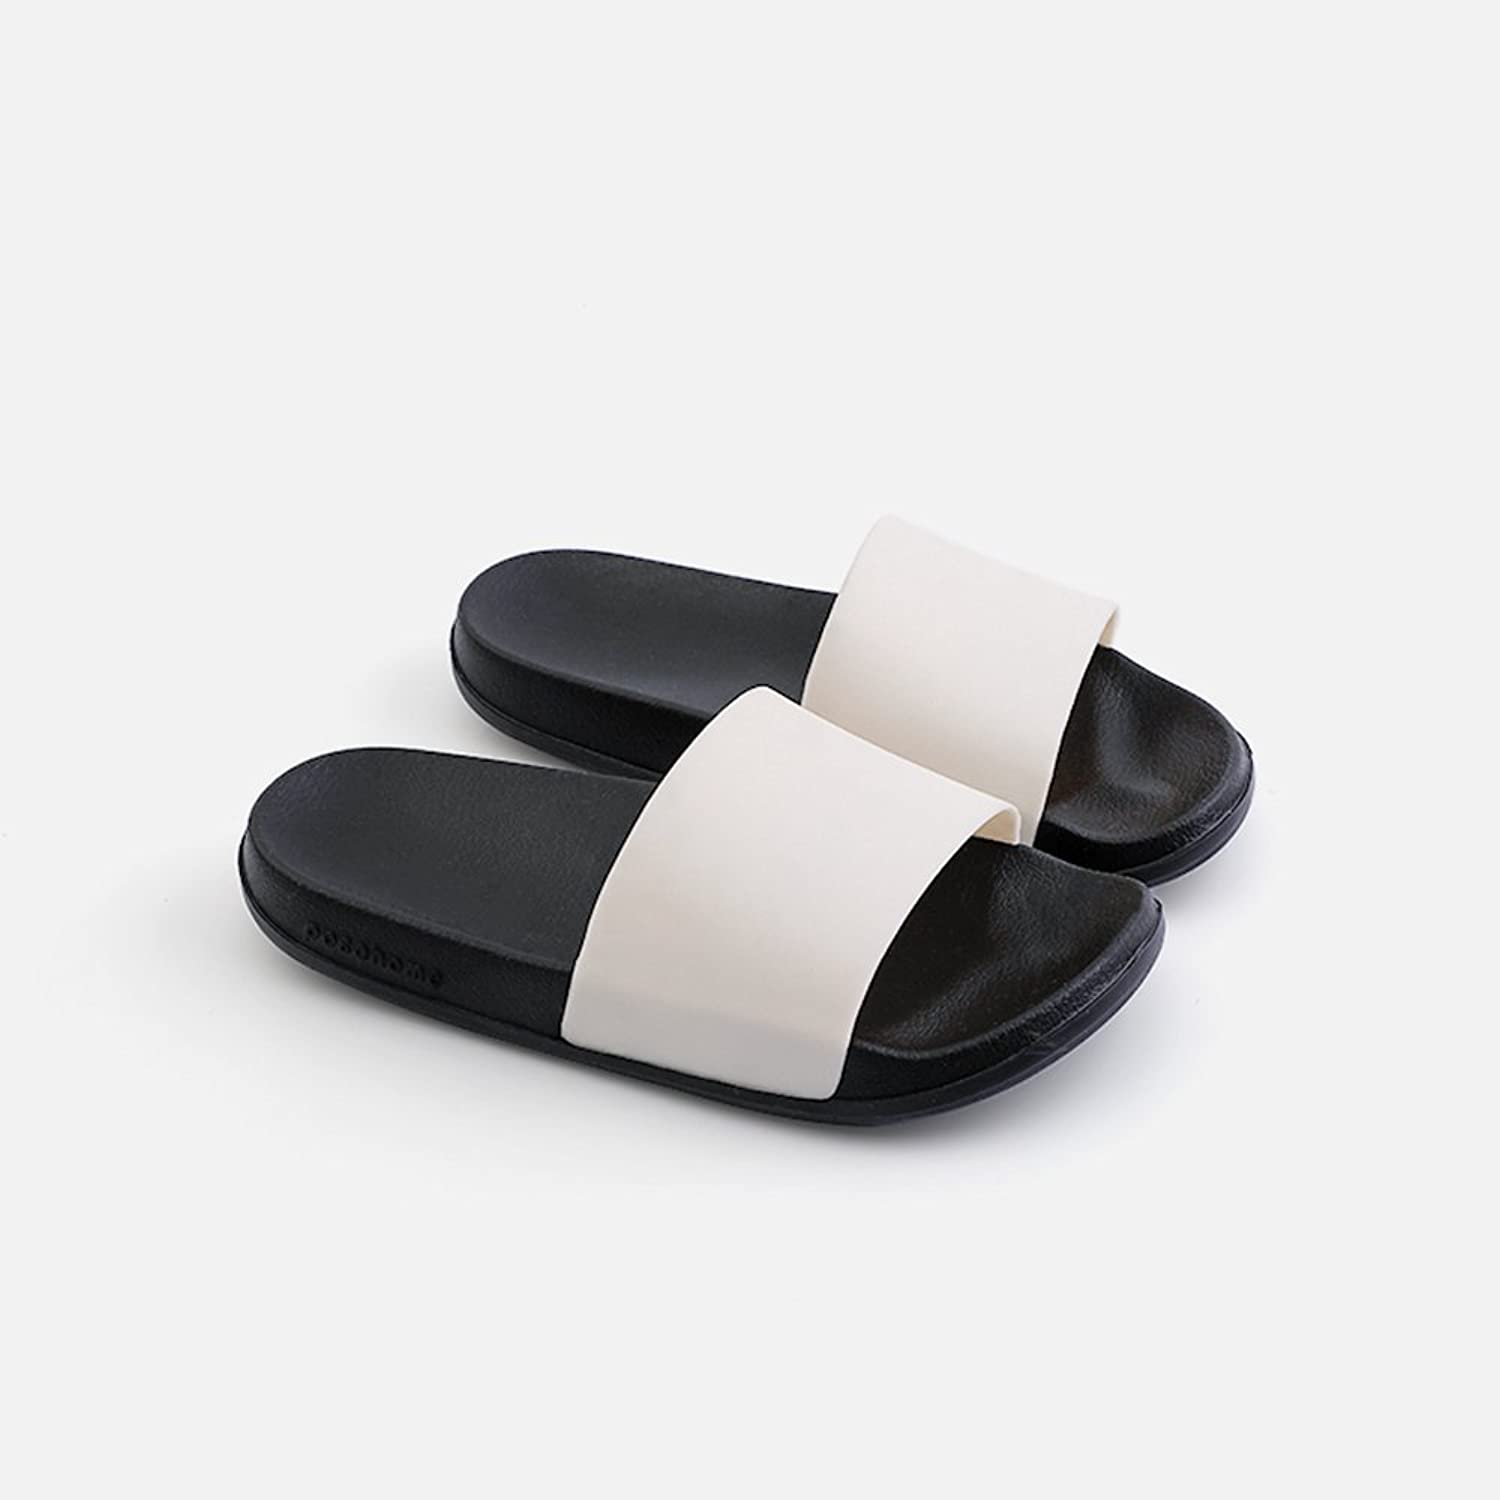 Lilongjiao Female Slippers Set Indoor House Non-Slip Shower Sandals Swimming Pool Water shoes Bath Slippers Thick